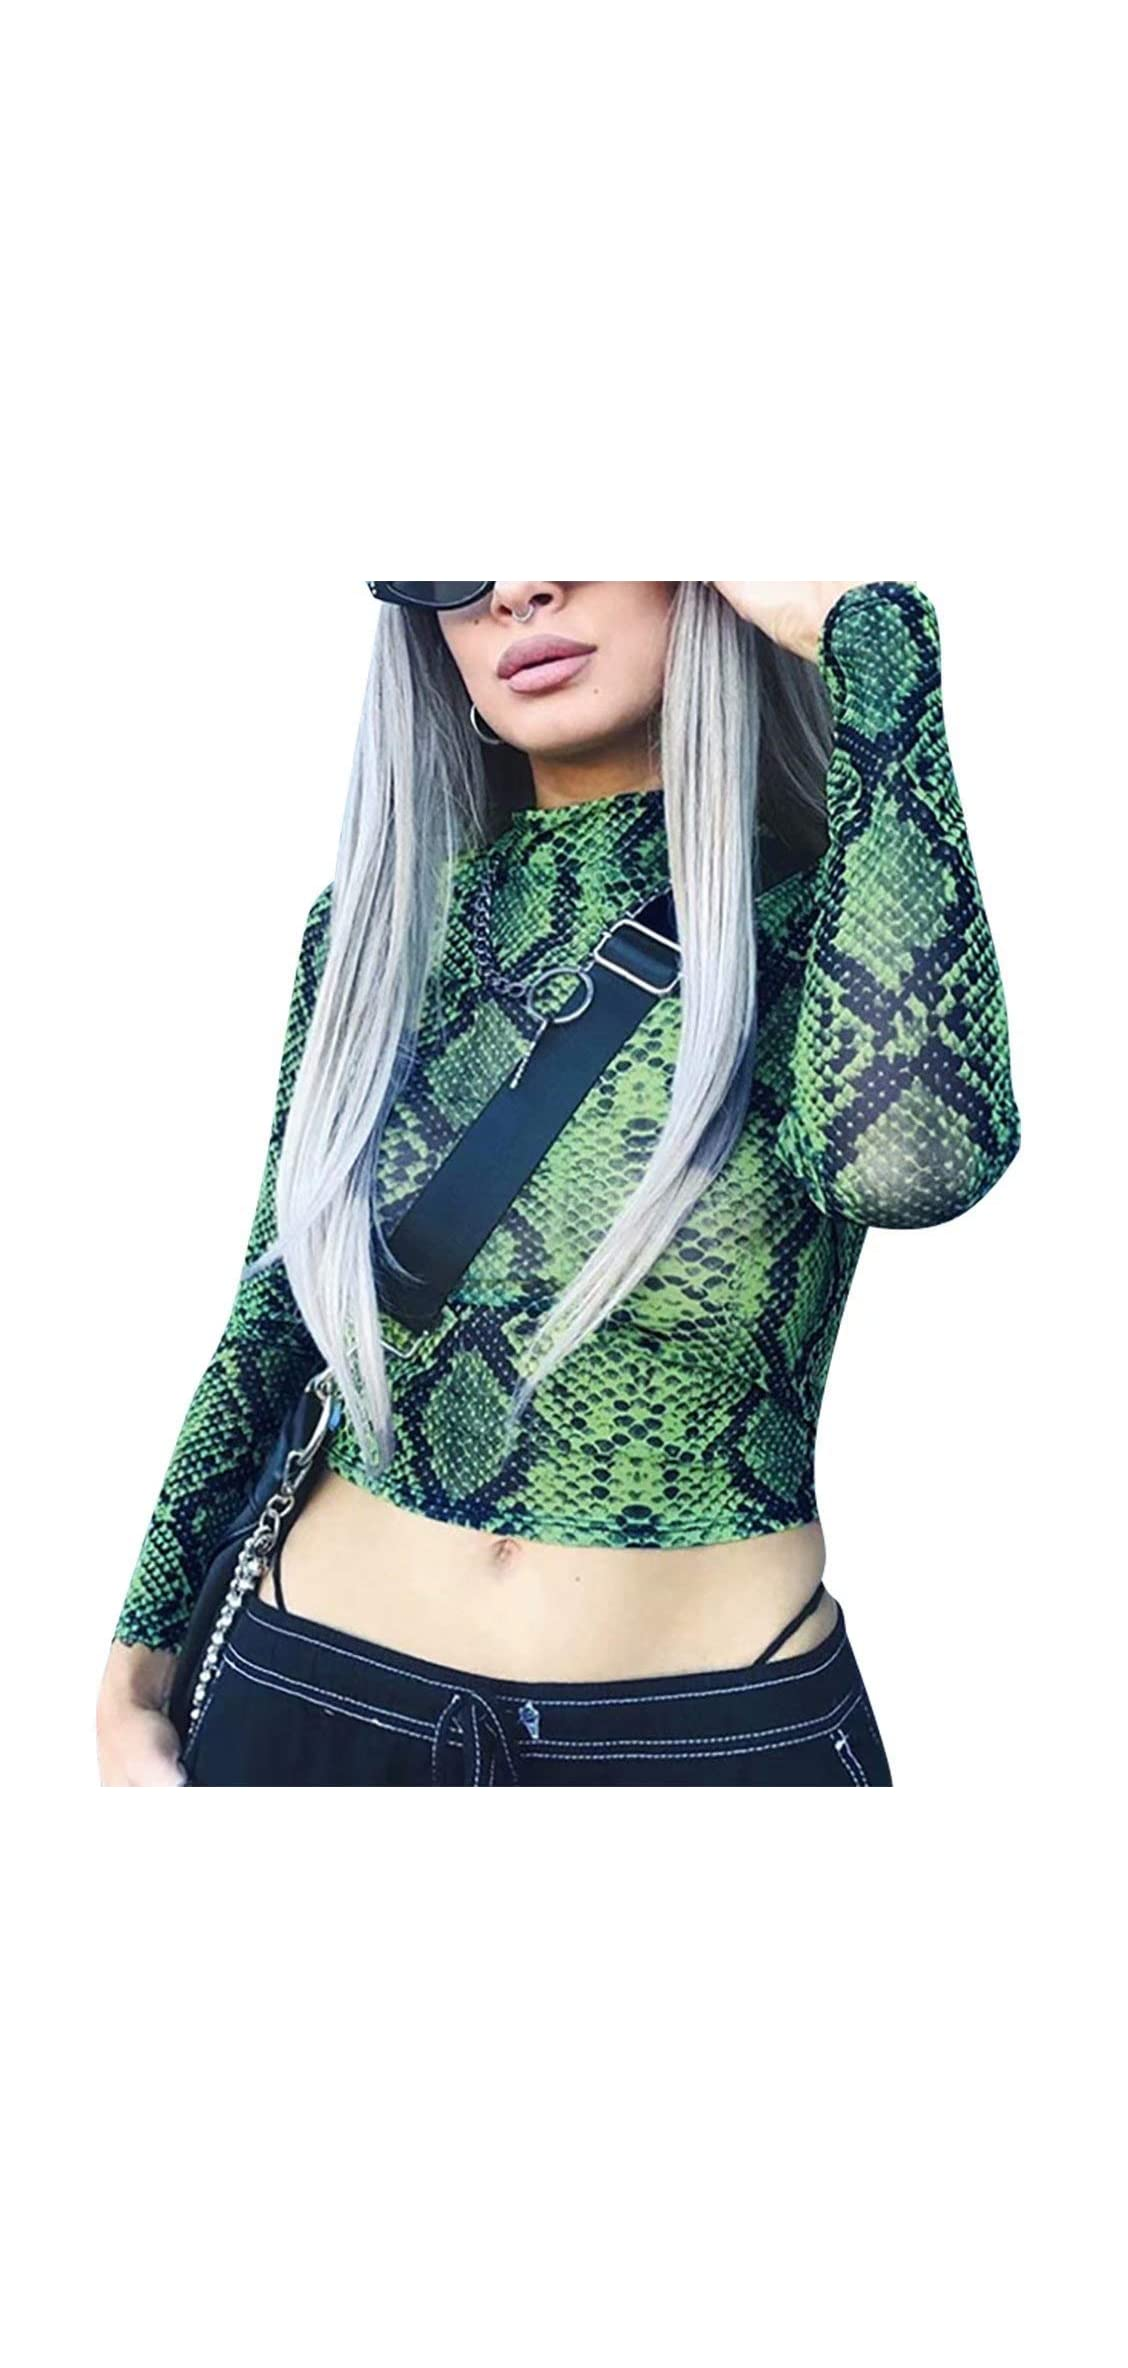 Snake Skin Print Blouse Womens Mock Neck See Through Sexy Crop